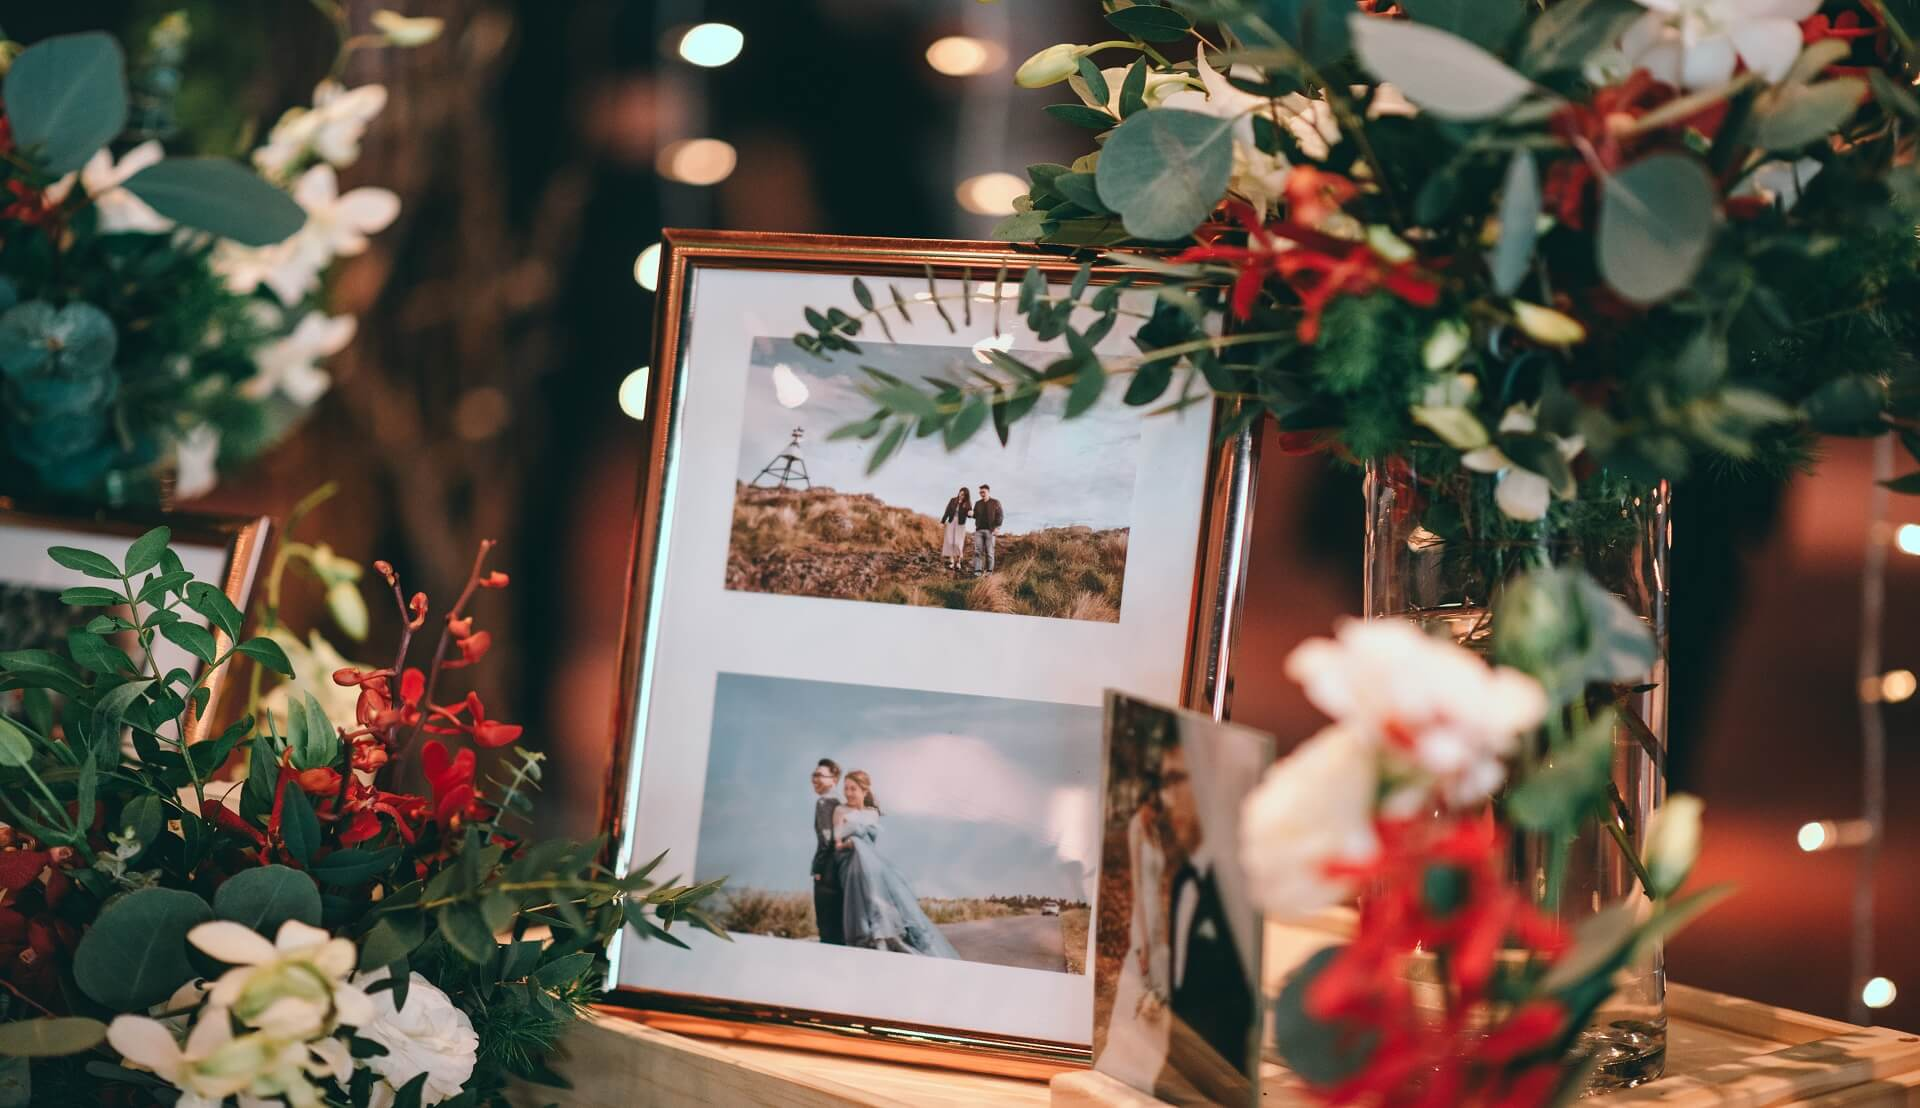 Sugar & Spice Events - Photo frame display